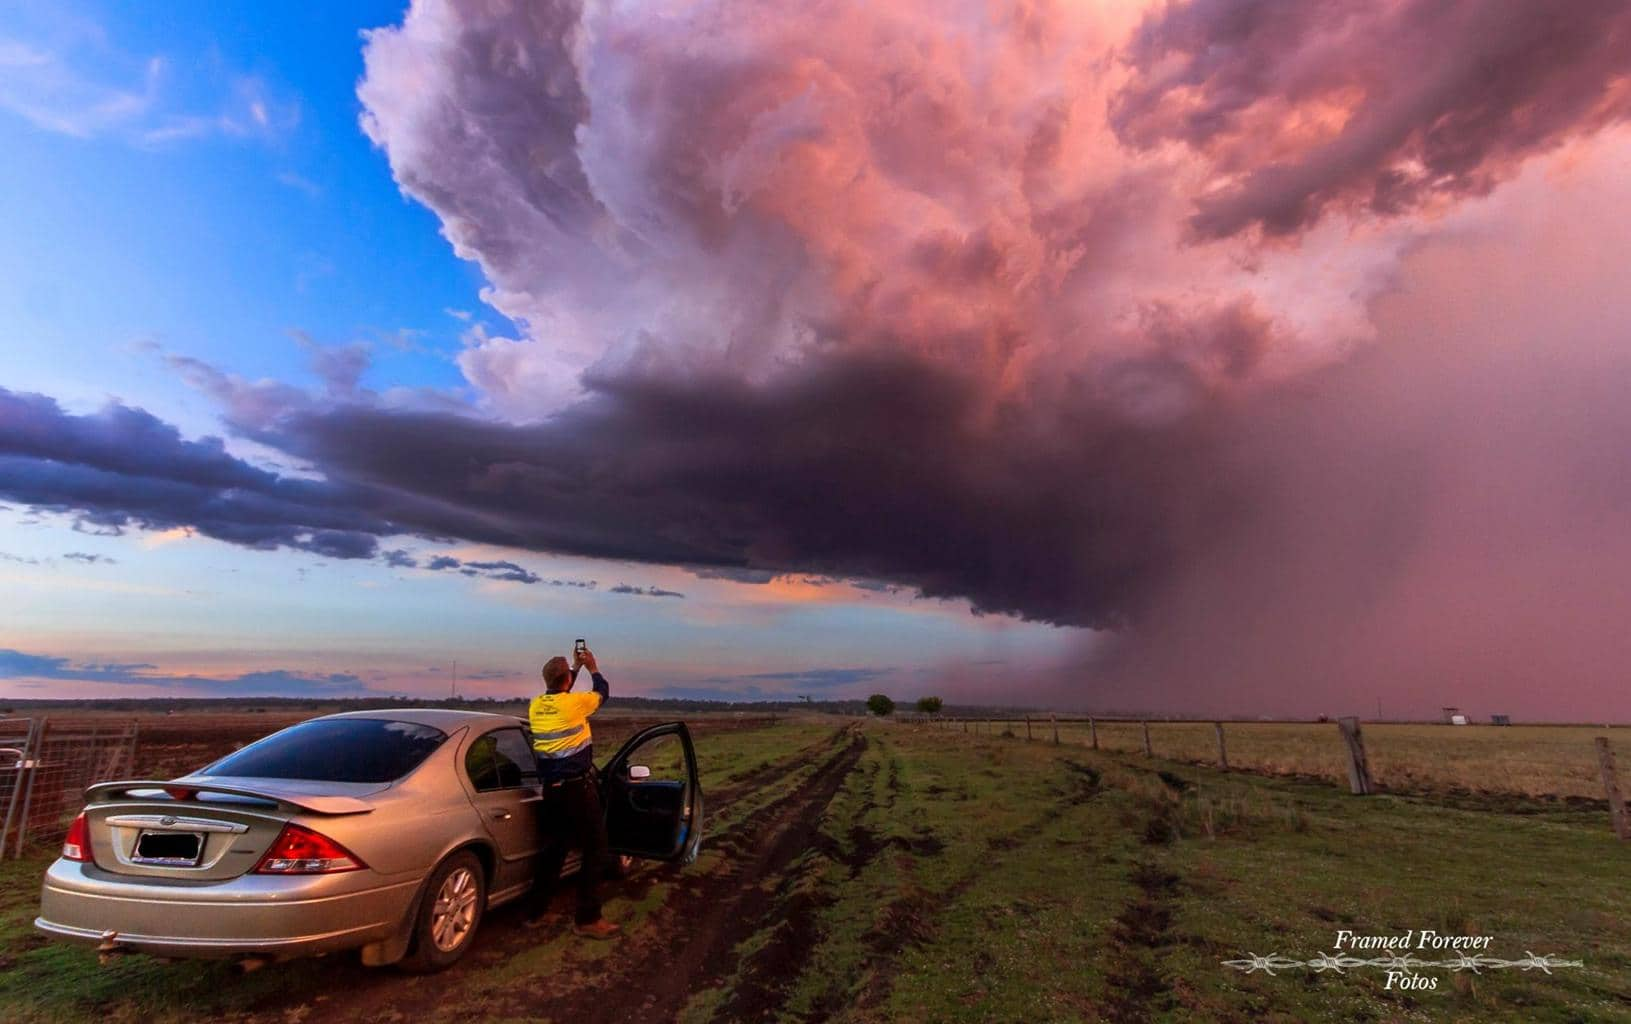 Well this little lovely storm was nearly a year ago. Michelle Megs Chris an I where sitting in the heat at Warwick Rodeo watching these storms Build. We girls followed Chris on a quick chase from Warwick to Allora. This was taken as the Sun was going down. Can't wait for this year. Am hoping to get a action shot at Warwick with a storm in the back ground. One can dream and Hope. Australia SEQld